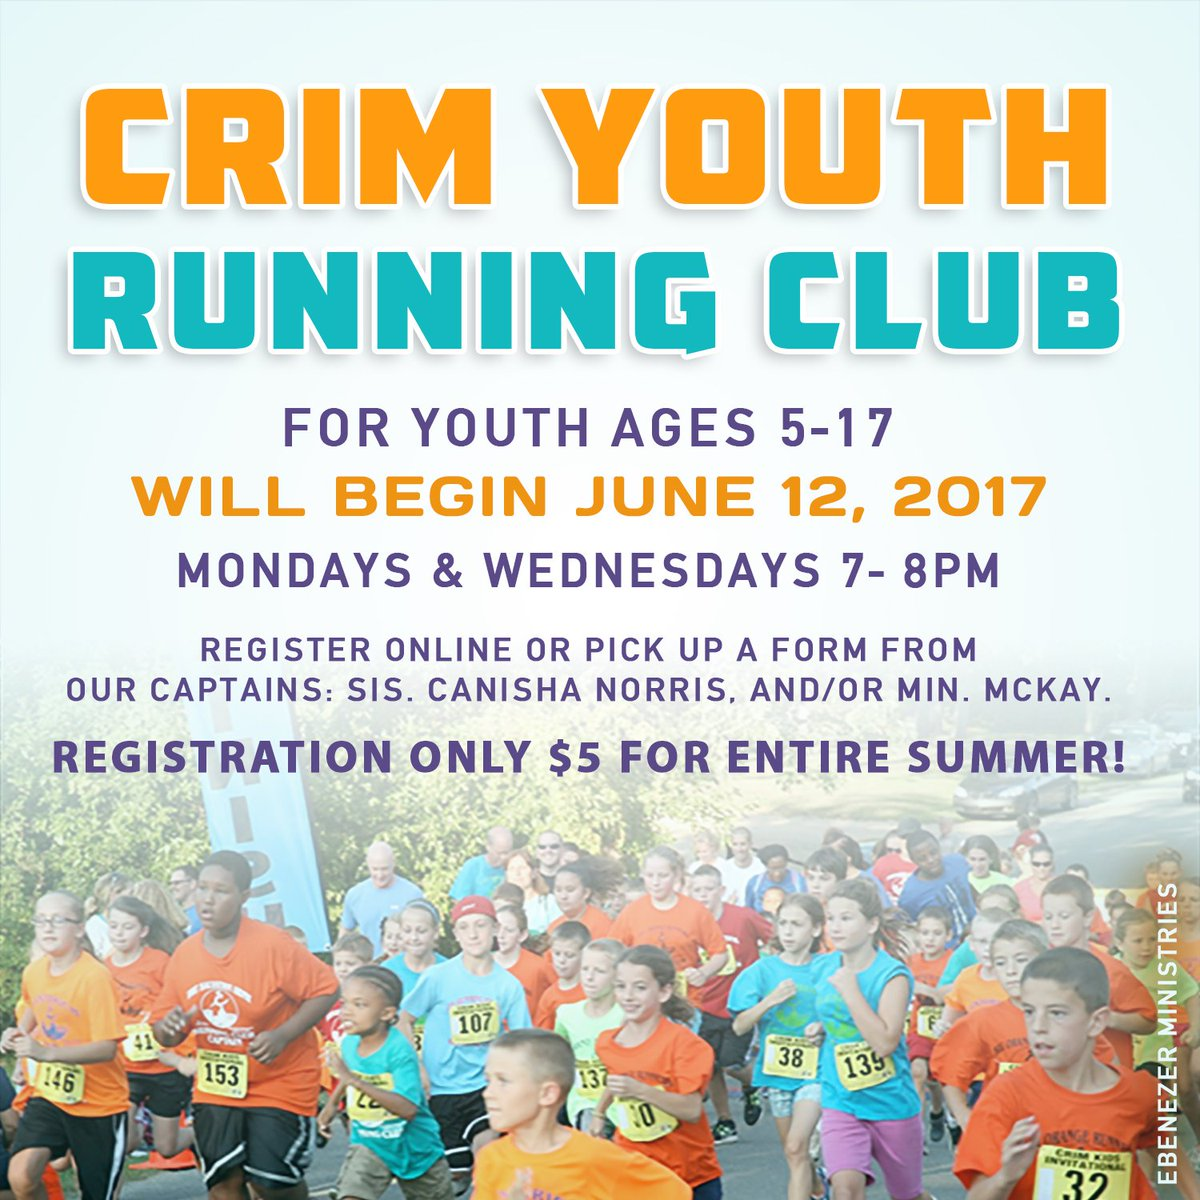 Summer FUN &amp; fitness on campus!! Register Wednesdays and Sunday or online #crimkids #crim #fit #church<br>http://pic.twitter.com/Ivvwg97PgN